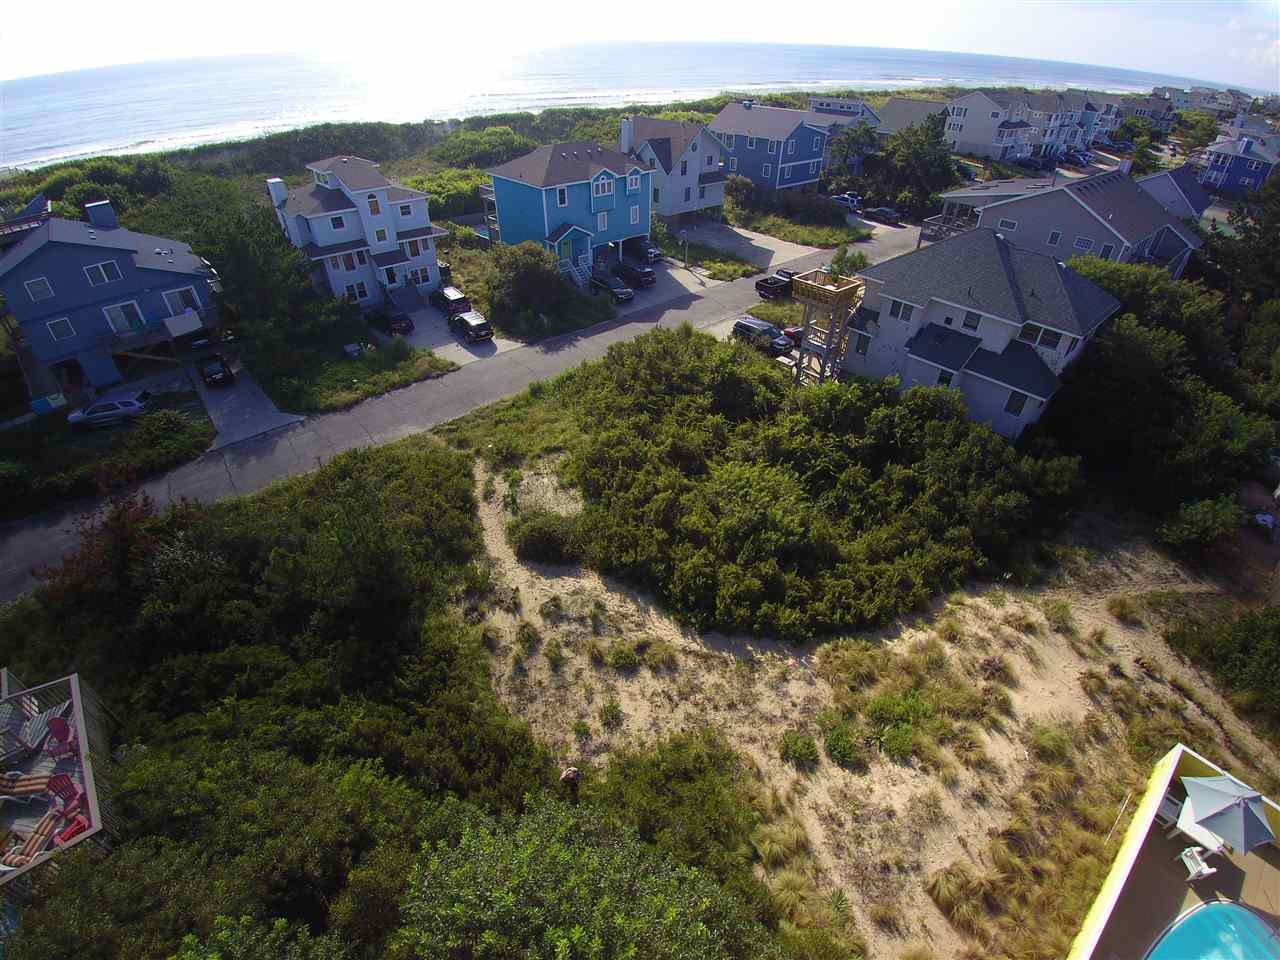 564 Porpoise Point, Corolla, NC 27927, 7 Bedrooms Bedrooms, ,7 BathroomsBathrooms,Residential,For sale,Porpoise Point,95648